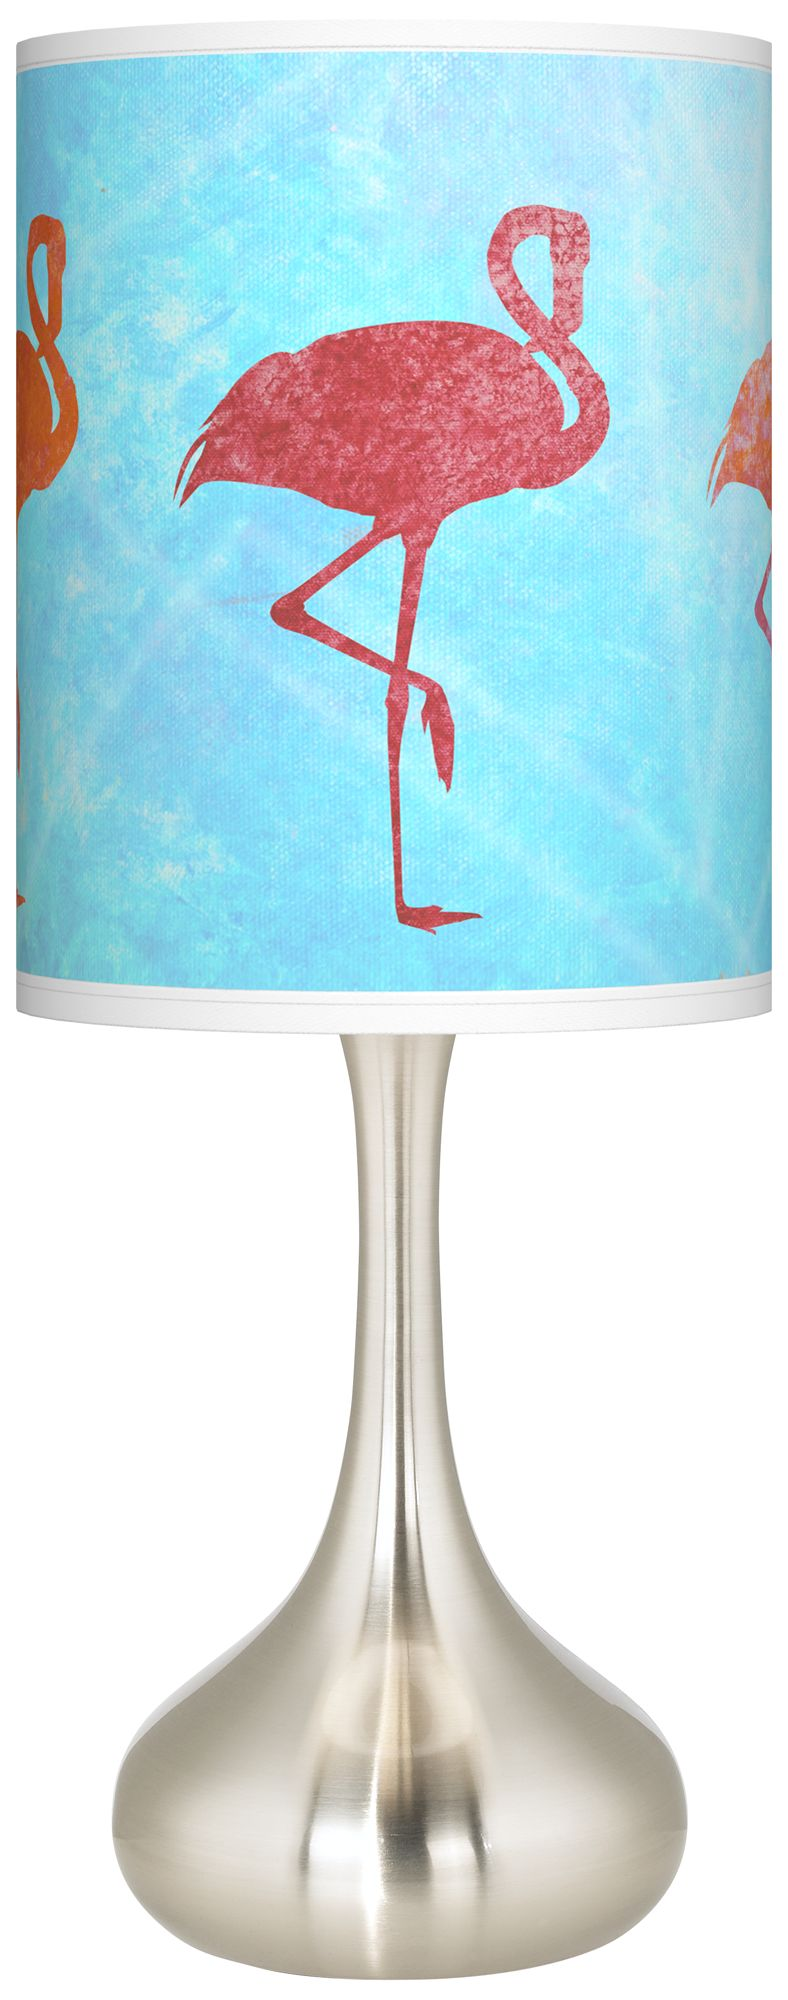 Flamingo Shade Giclee Droplet Table Lamp